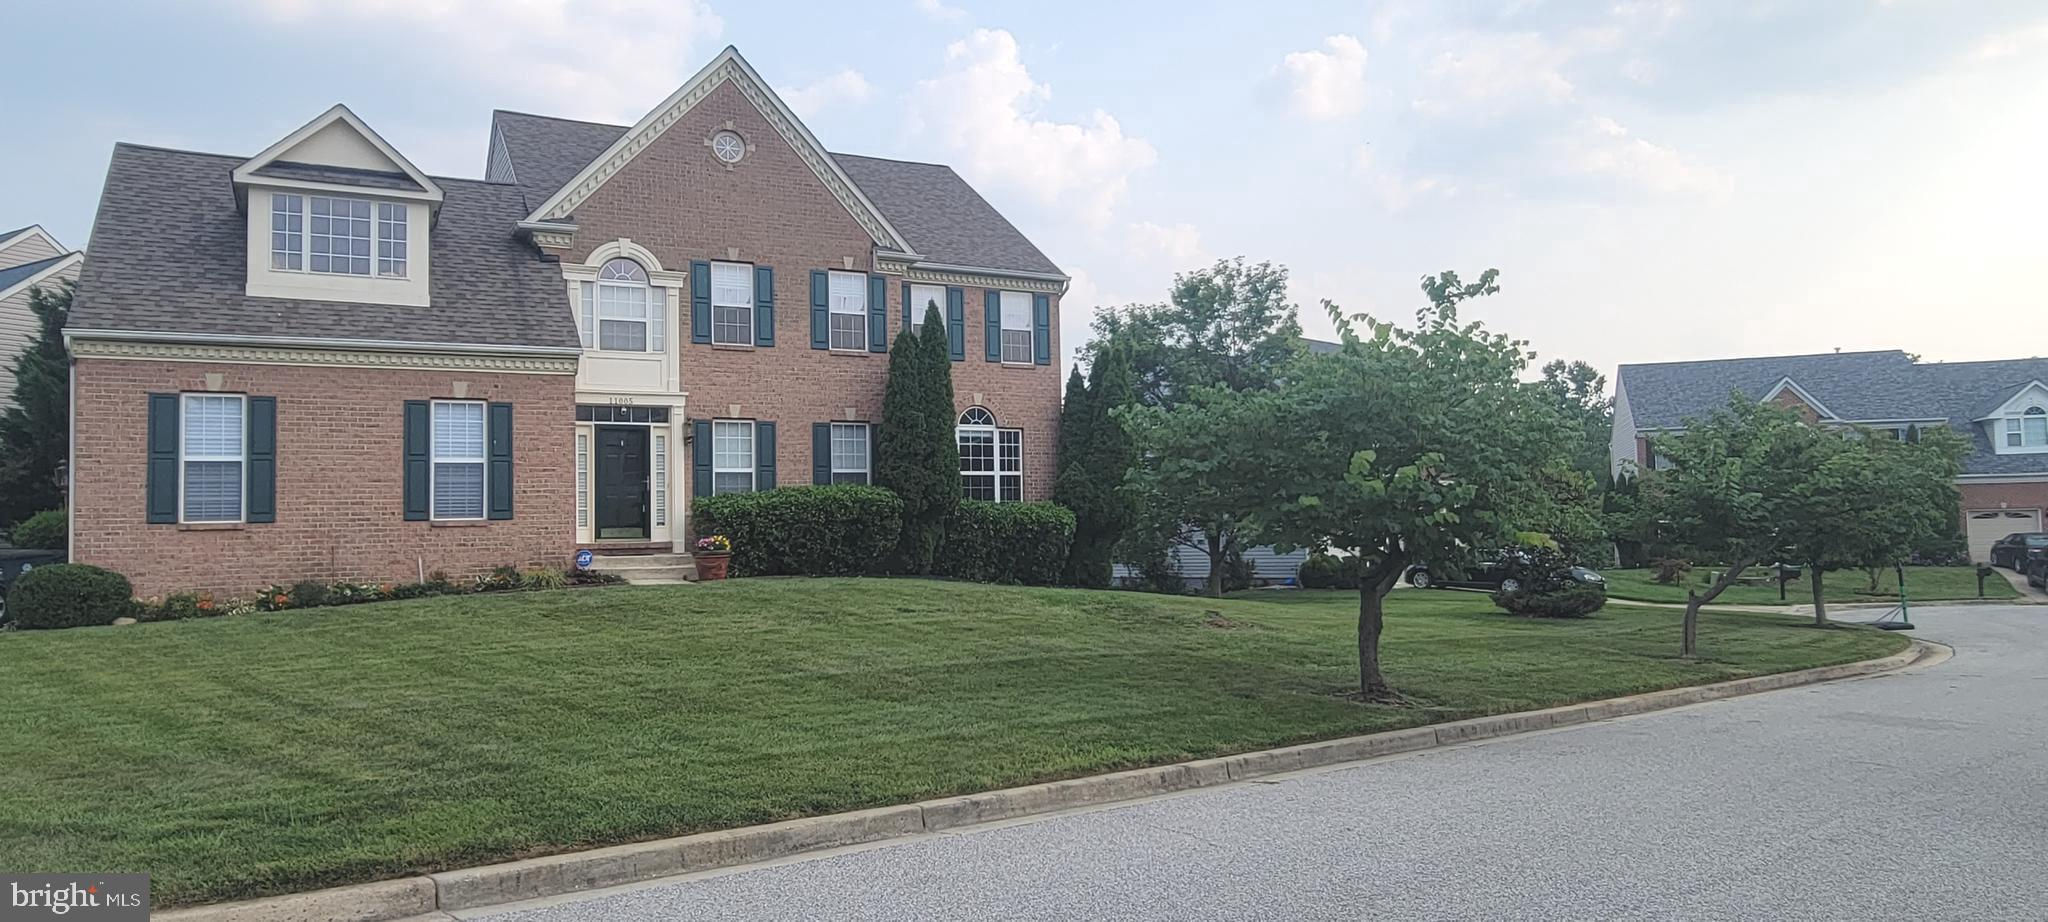 11005 Lake Deborah Court, Bowie, MD 20720 is now new to the market!